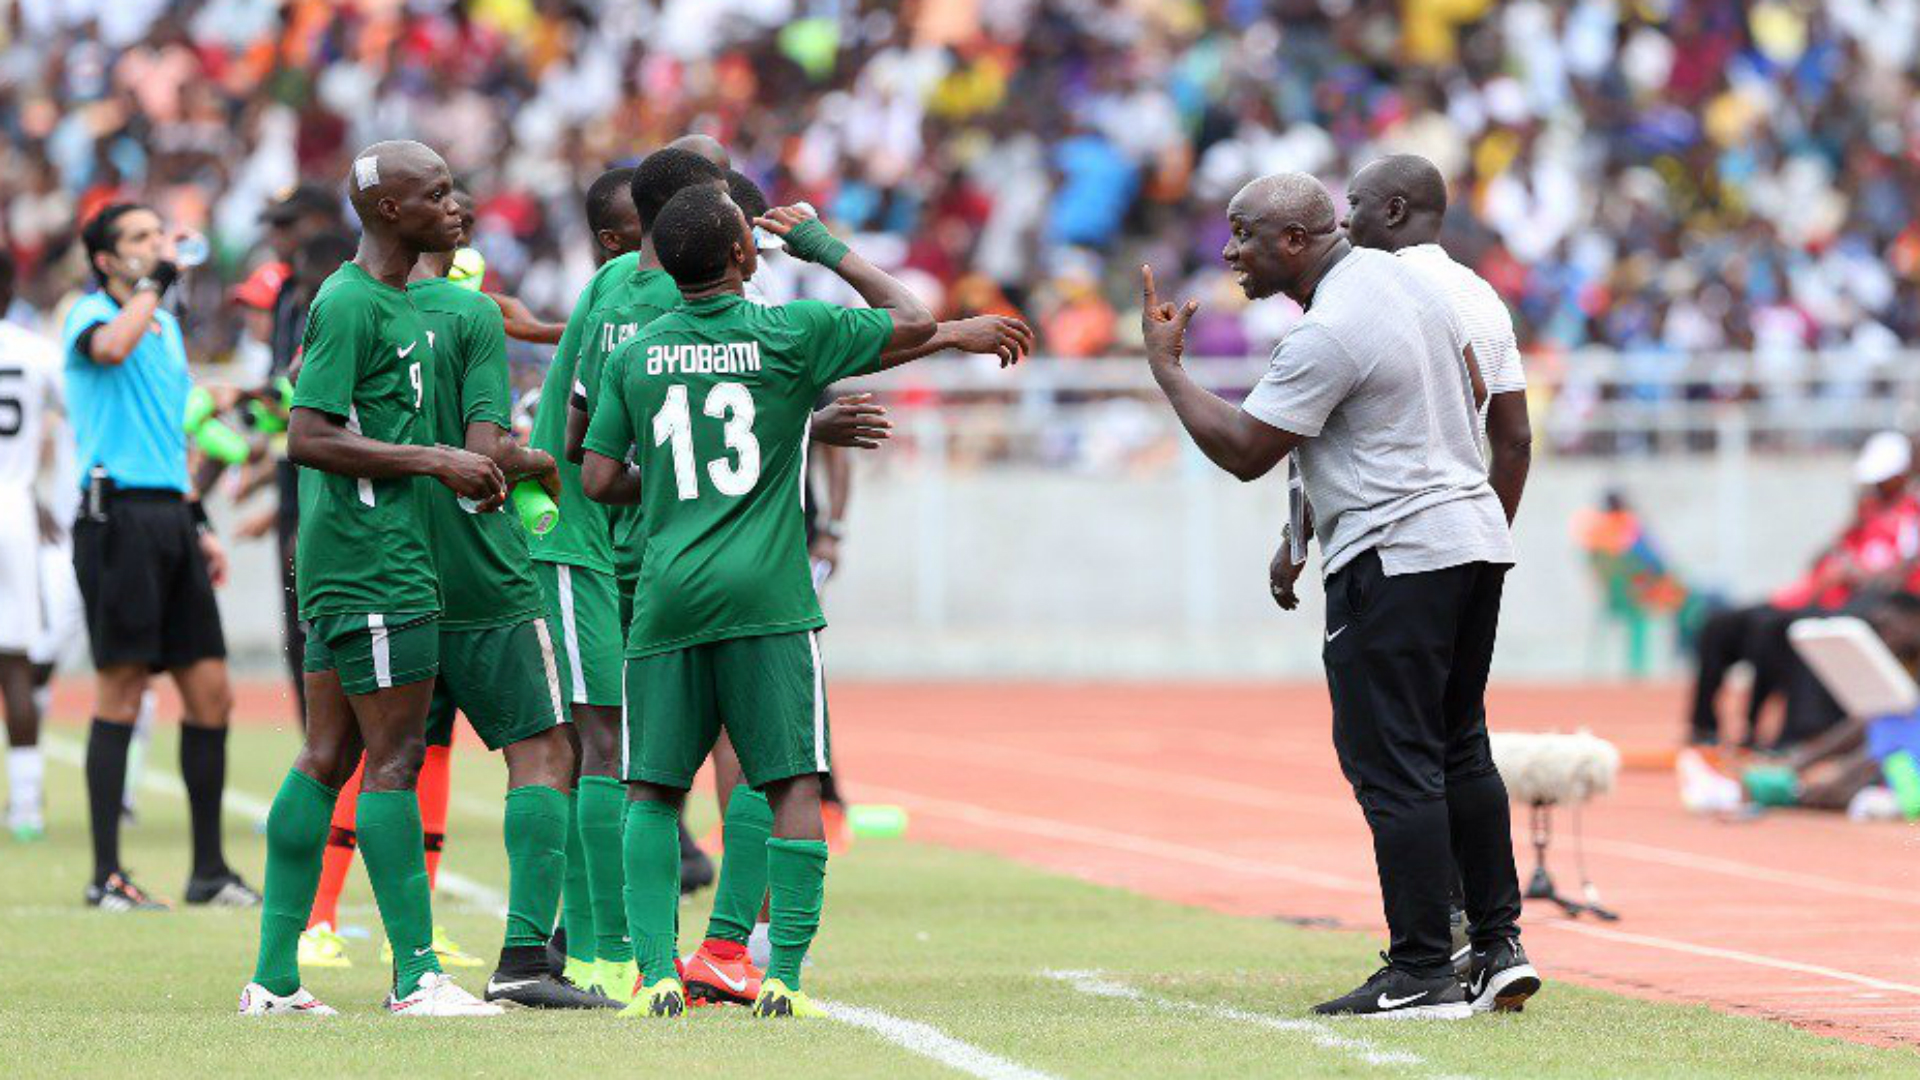 'Worst U17 team ever?' - Nigerians react to Golden Eaglets' World Cup exit